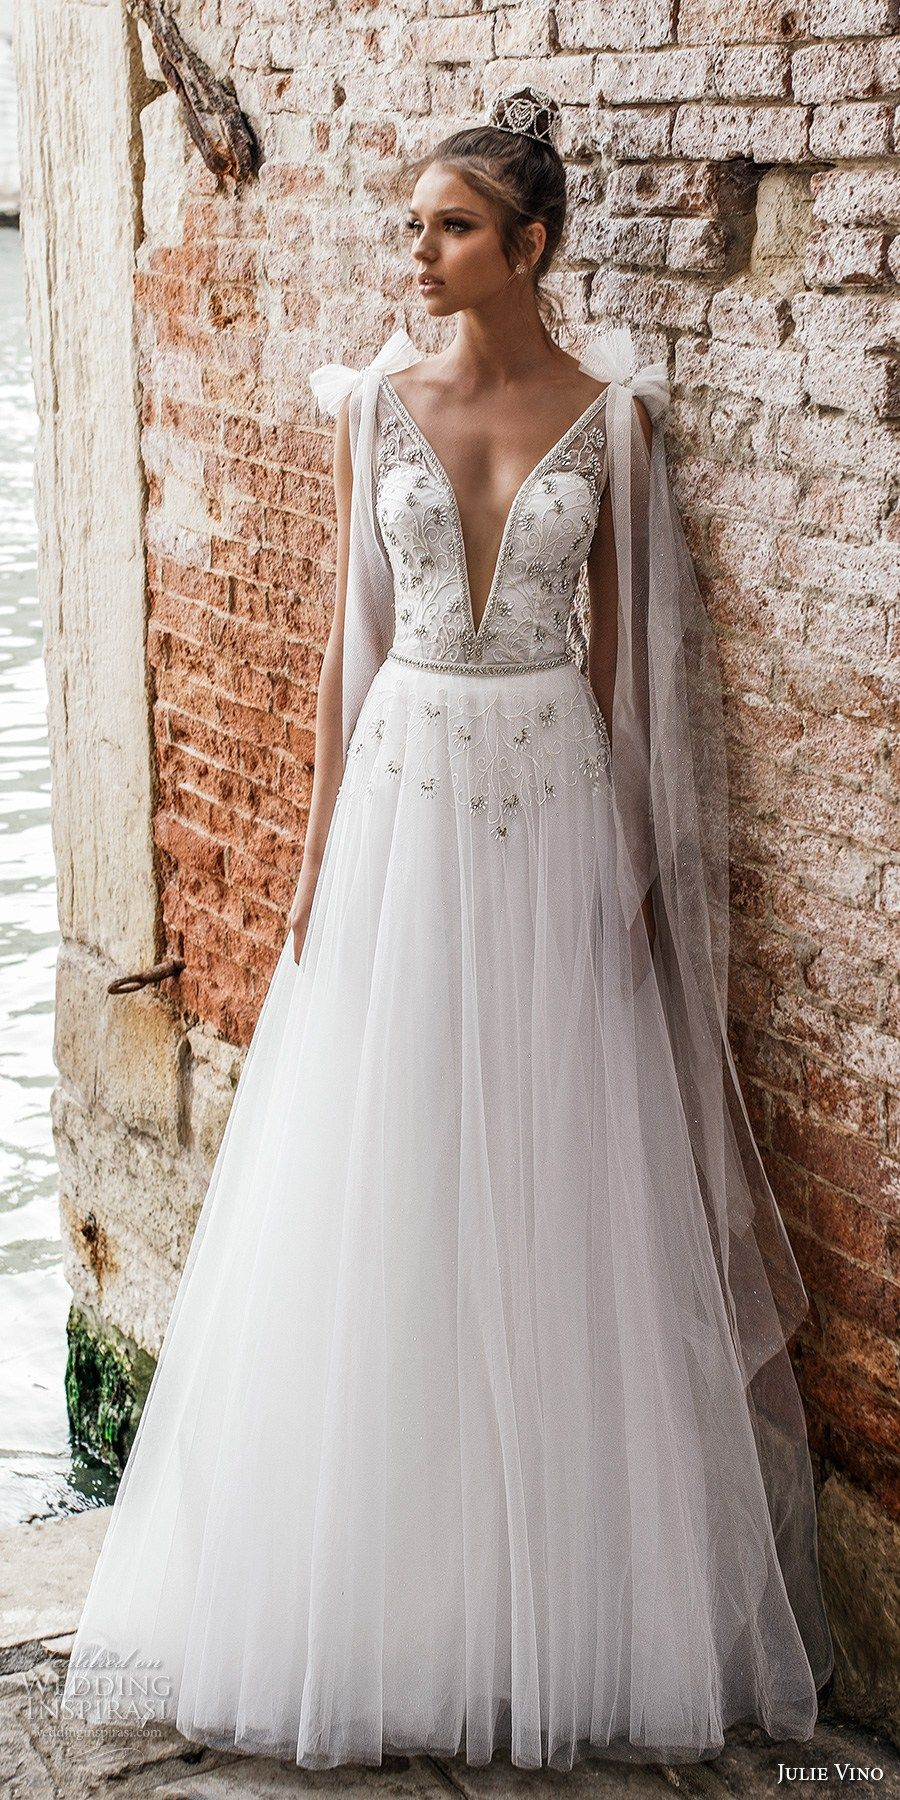 2018 Wedding Dress Trends To Love - Part 2: Bows, bows, bows ...